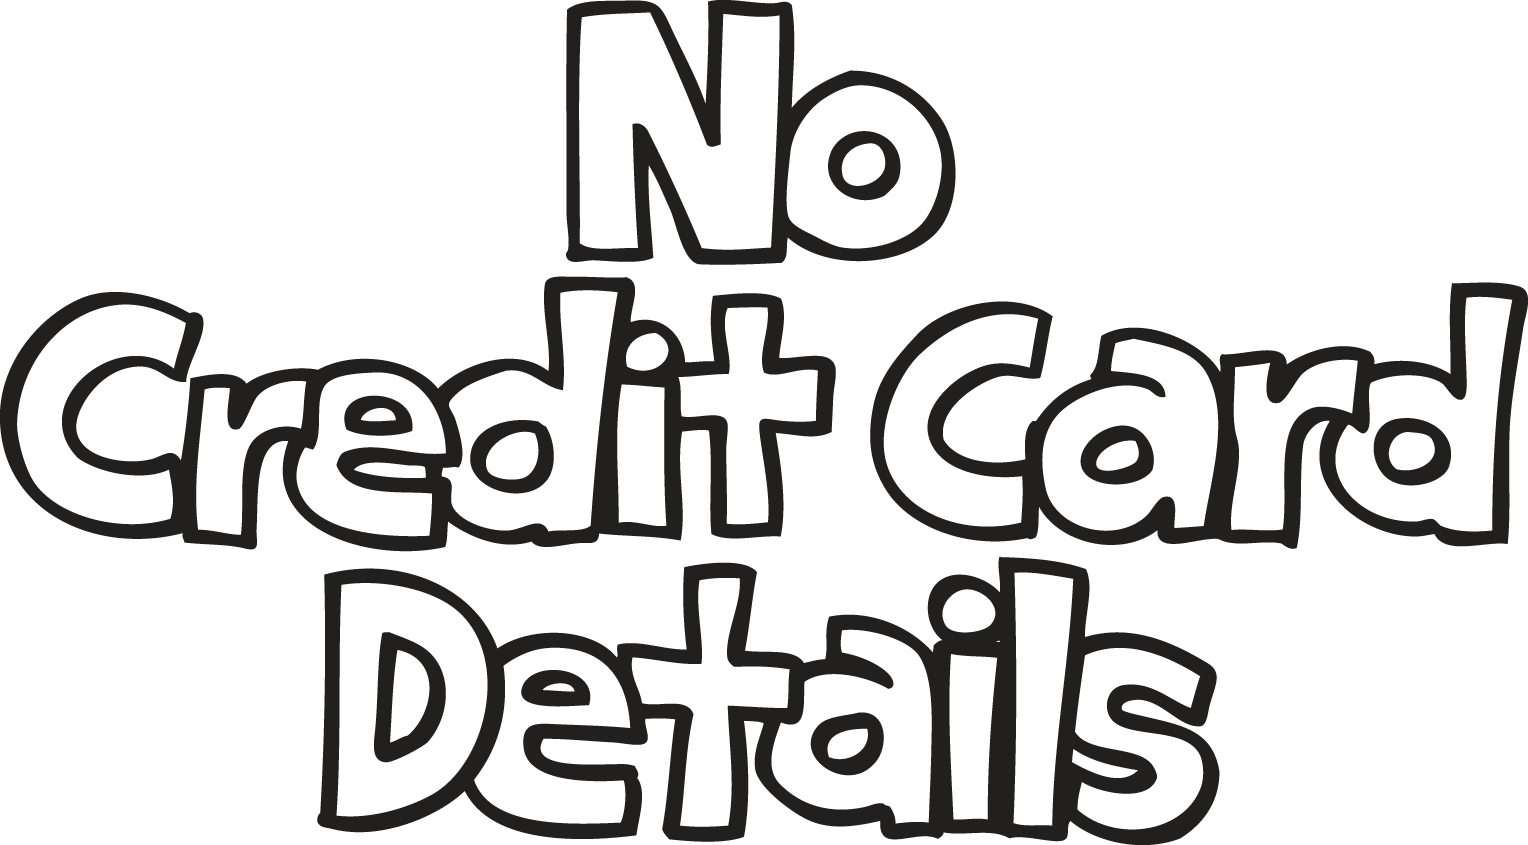 No credit card details